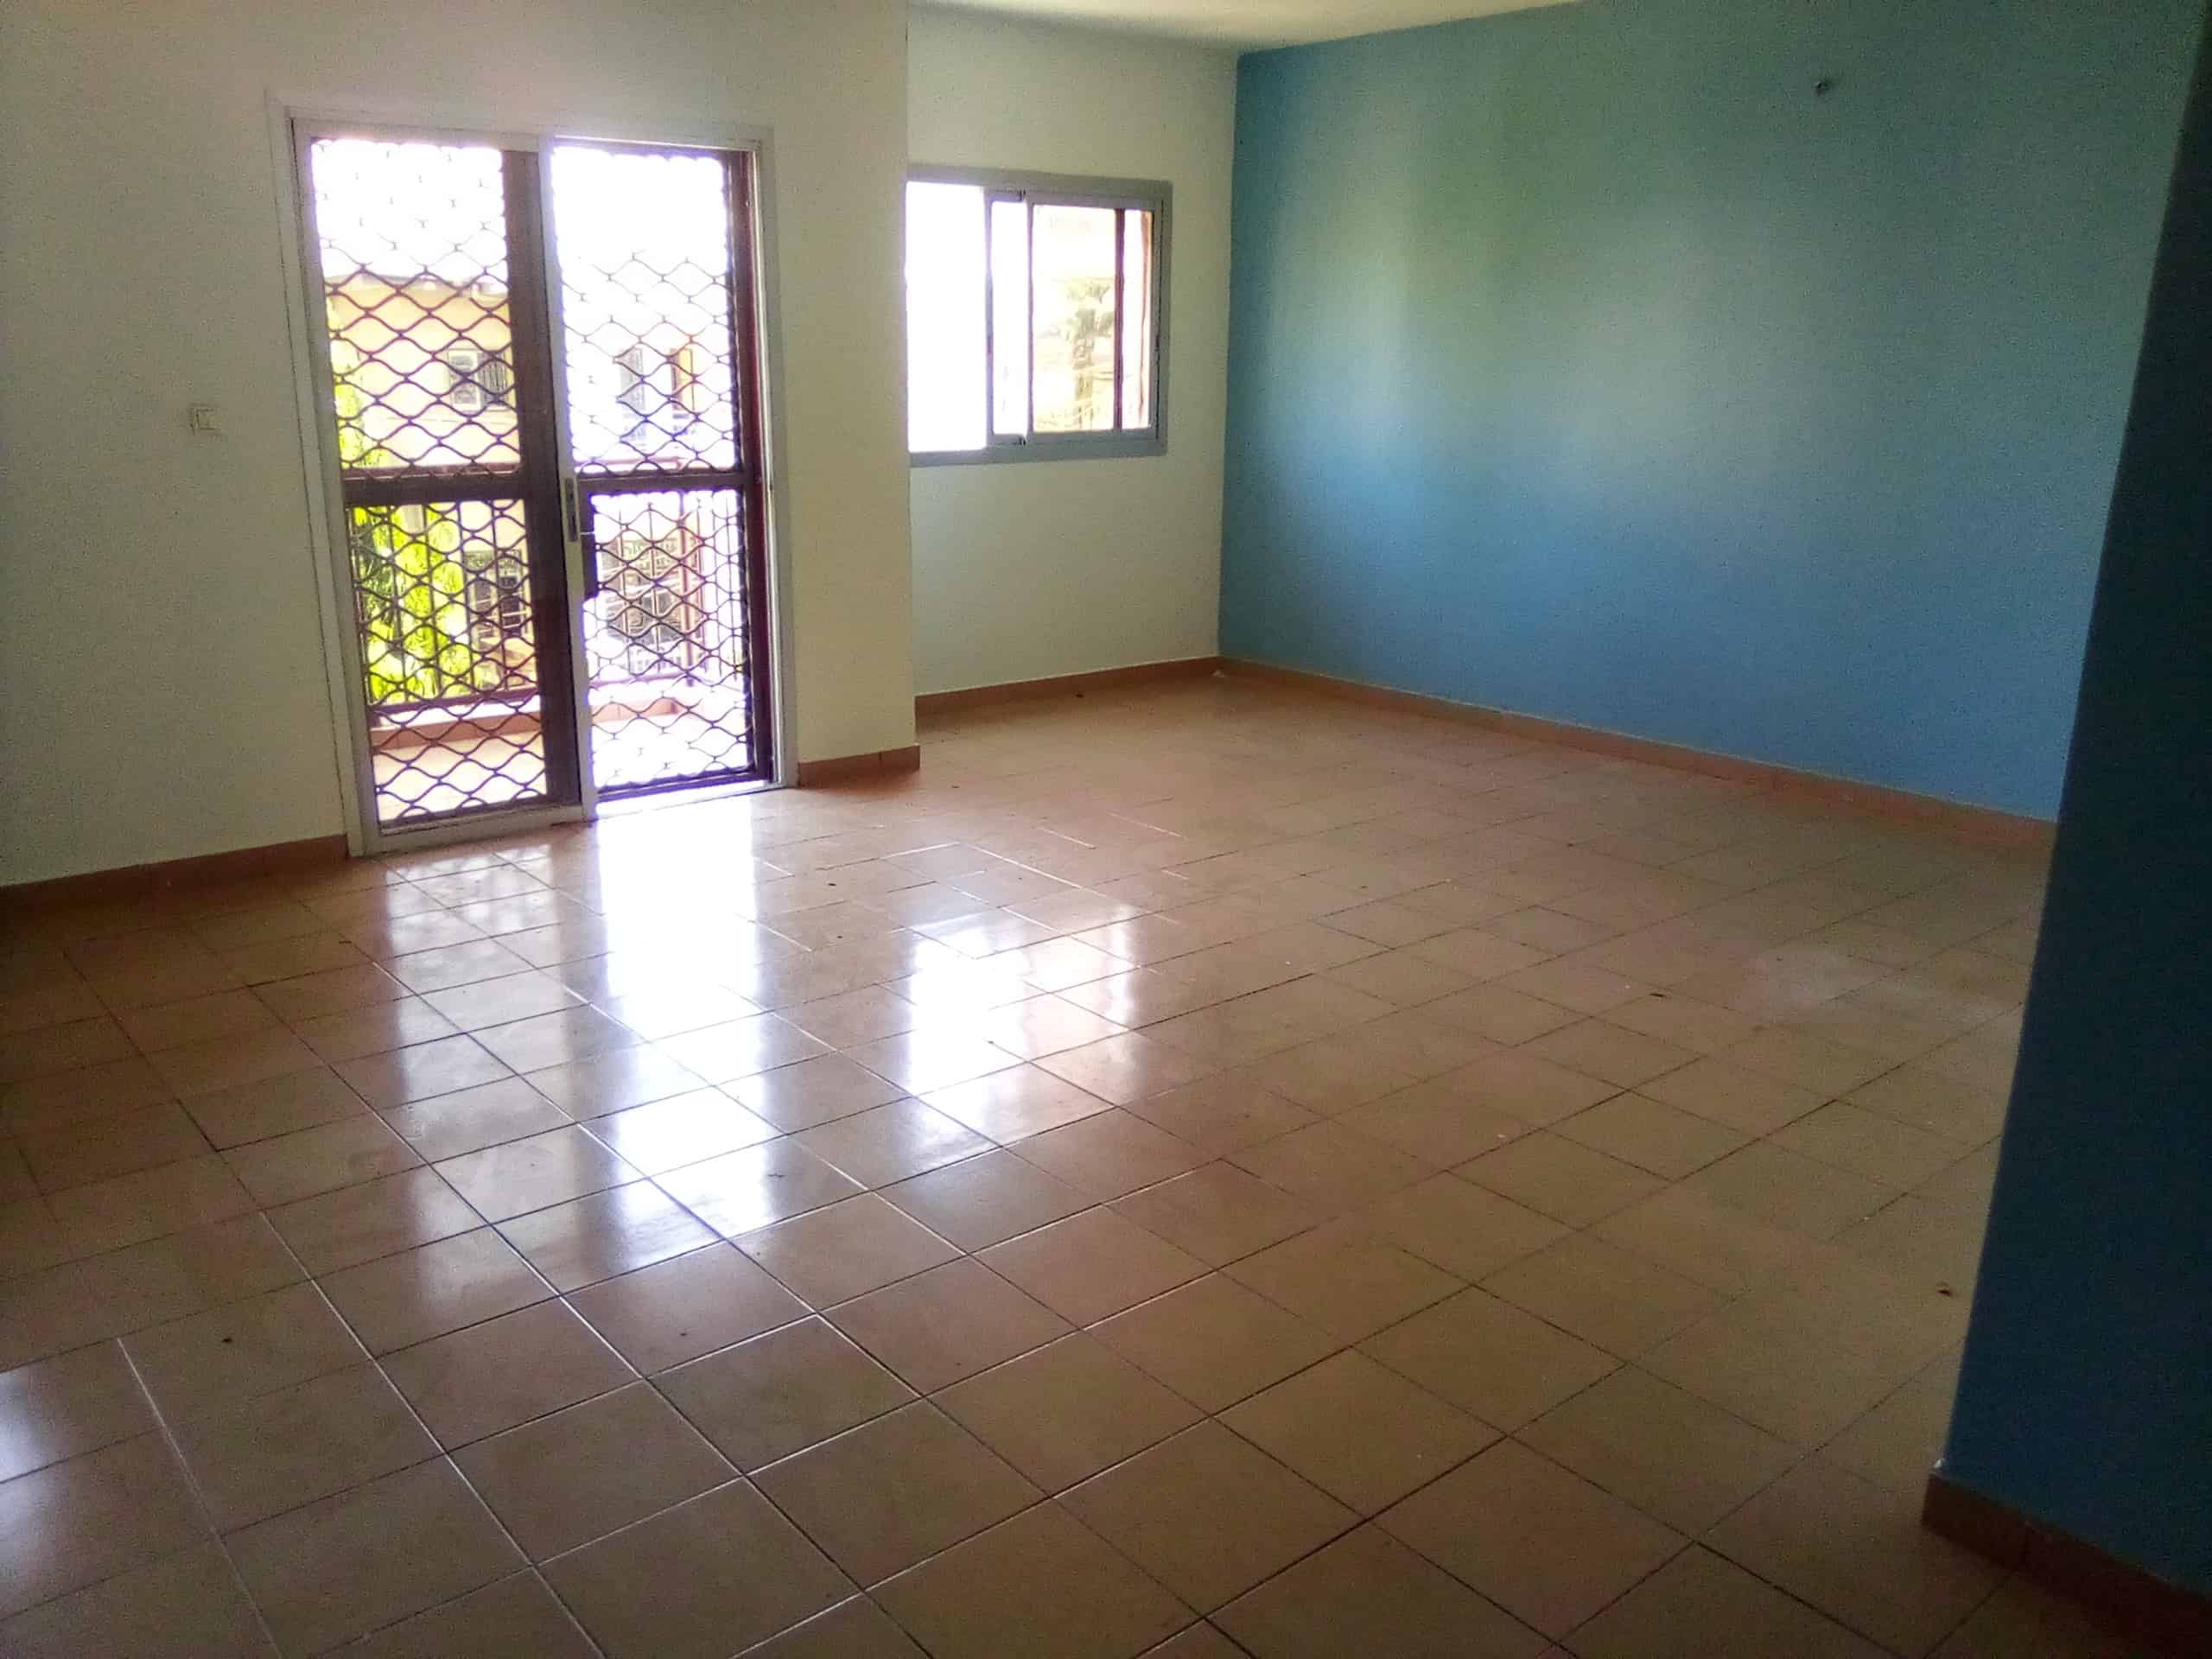 Apartment to rent - Douala, Makepe, 2CH+2DCH..4 MOIS D'AVANCE - 1 living room(s), 2 bedroom(s), 1 bathroom(s) - 135 000 FCFA / month